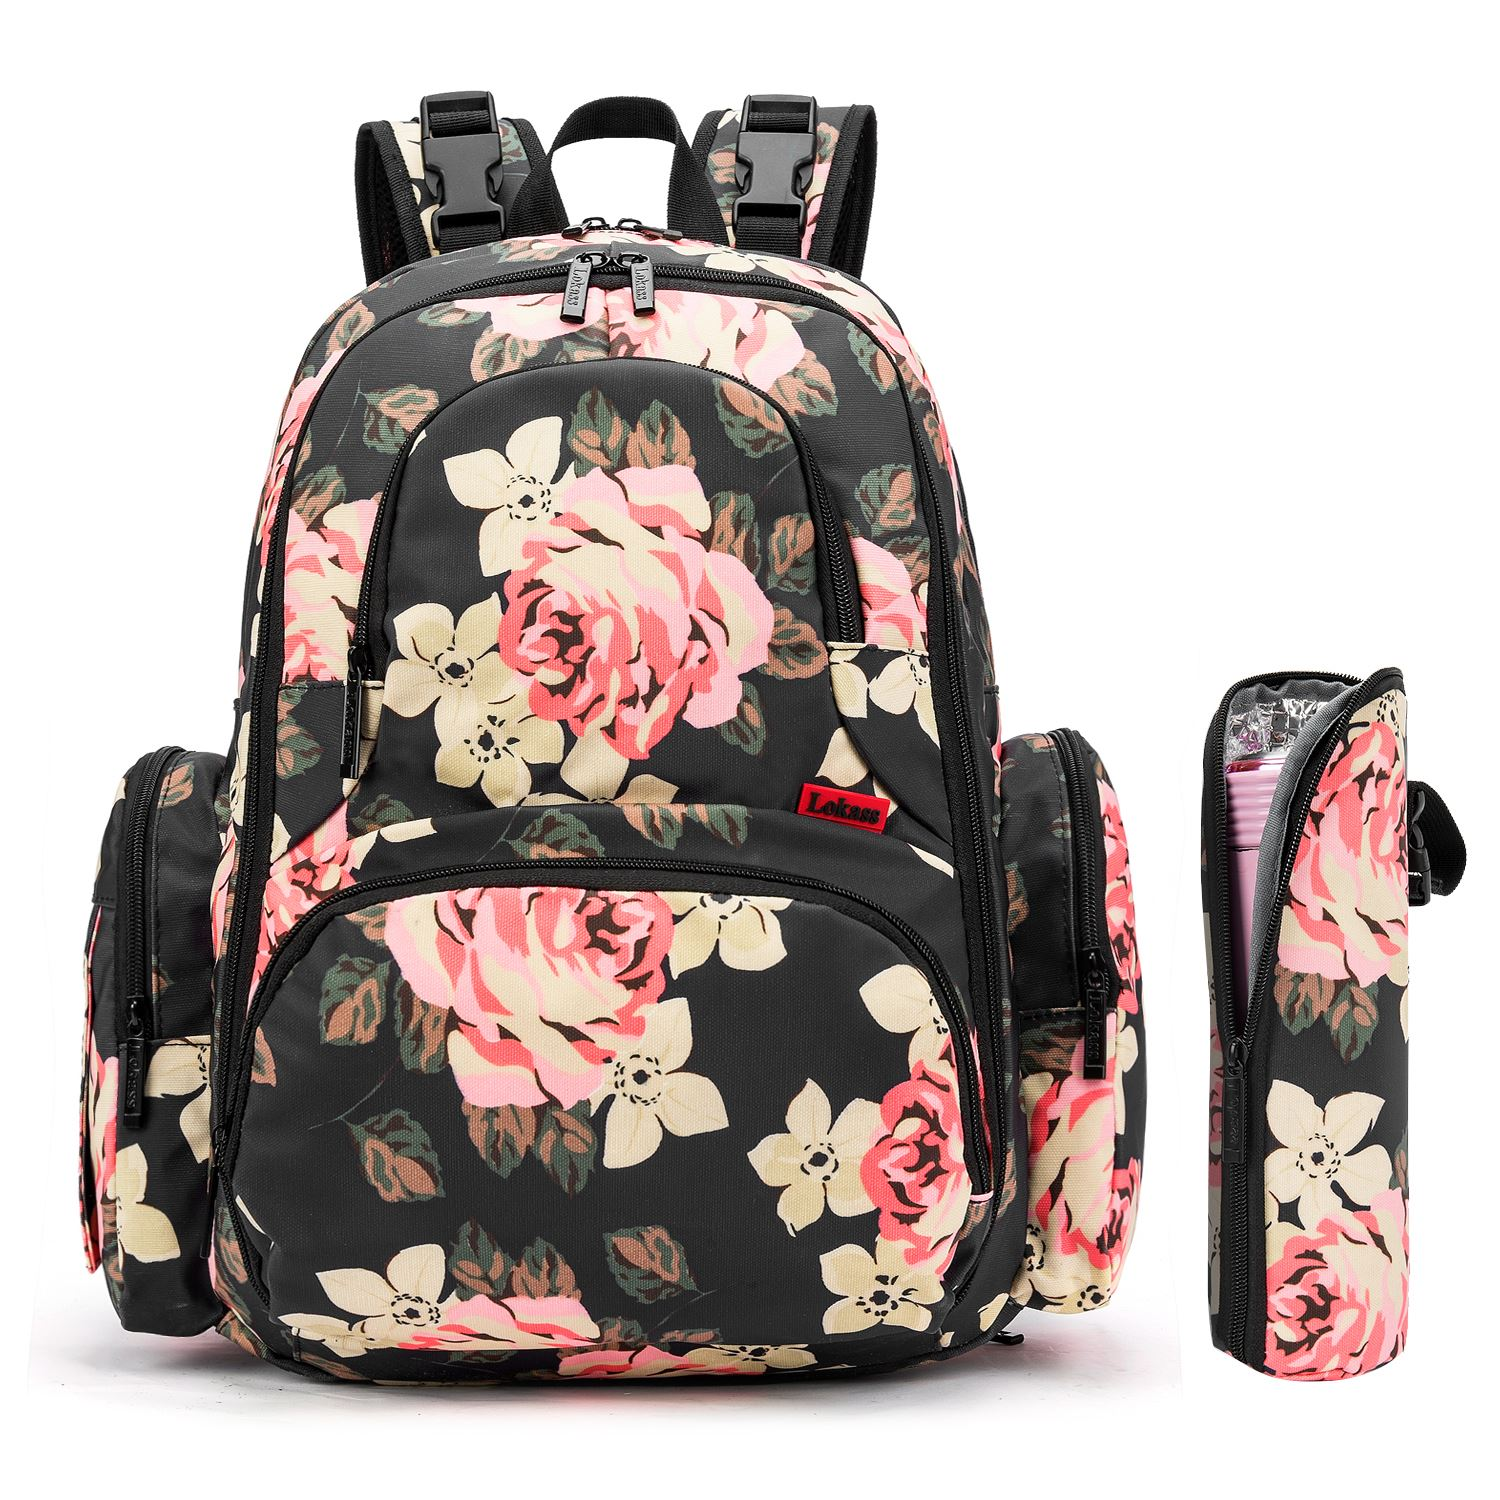 CoolBELL Brand Mummy Maternity Nappy Bag Large Capacity Baby Kids Bag Multifunctional Travel Backpack Baby Care